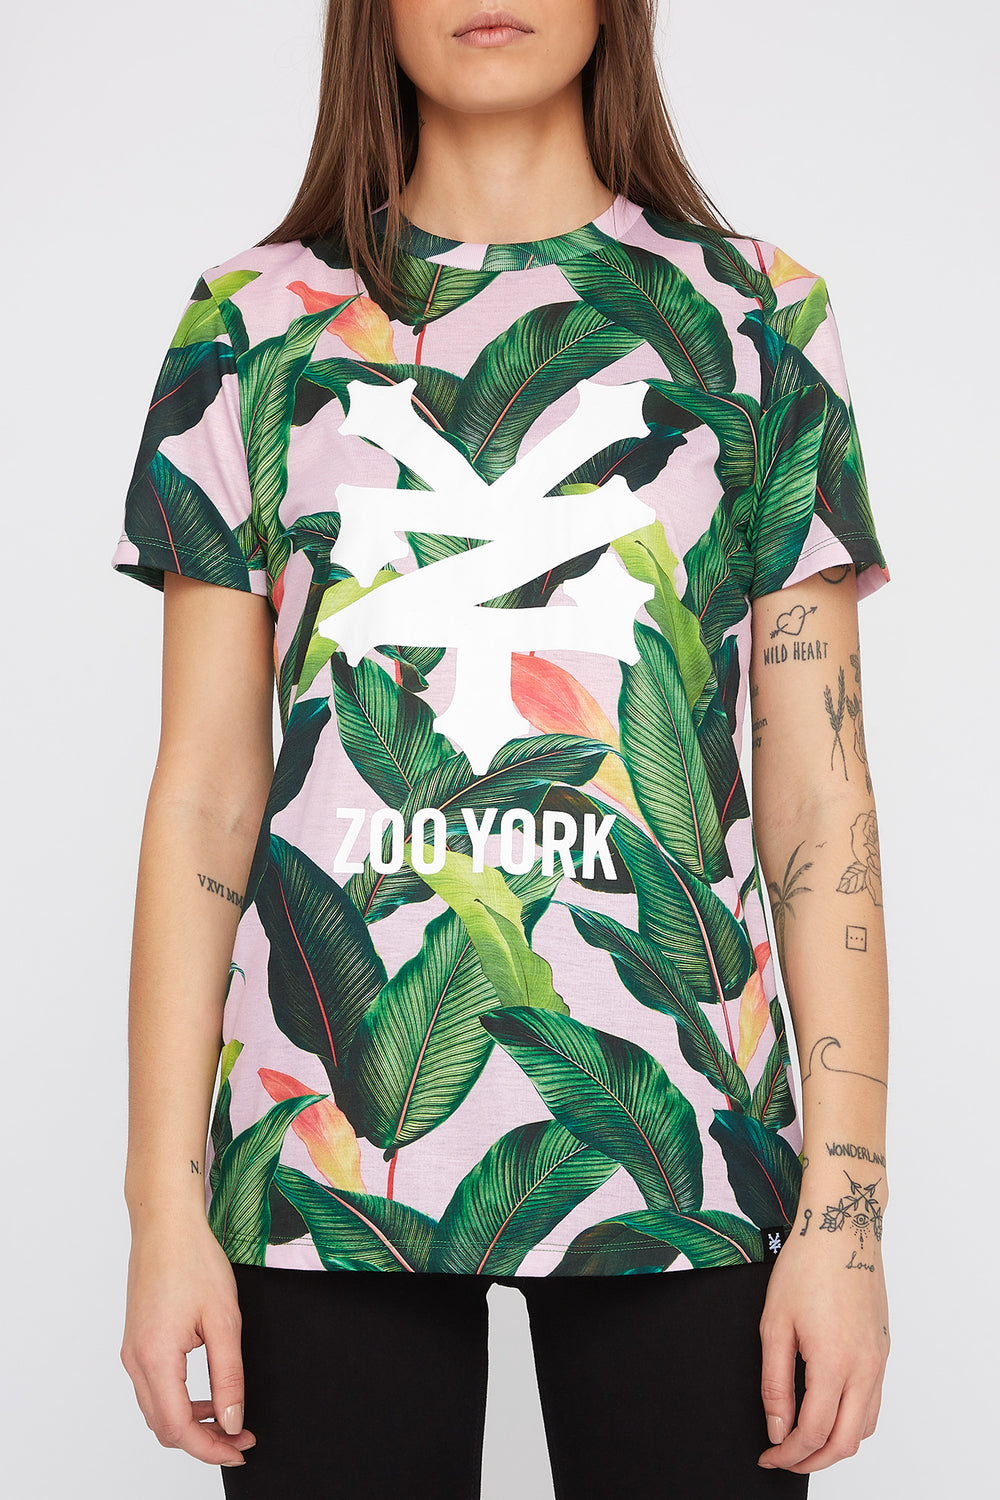 T-Shirt Imprimé Tropical Zoo York Femme Multi